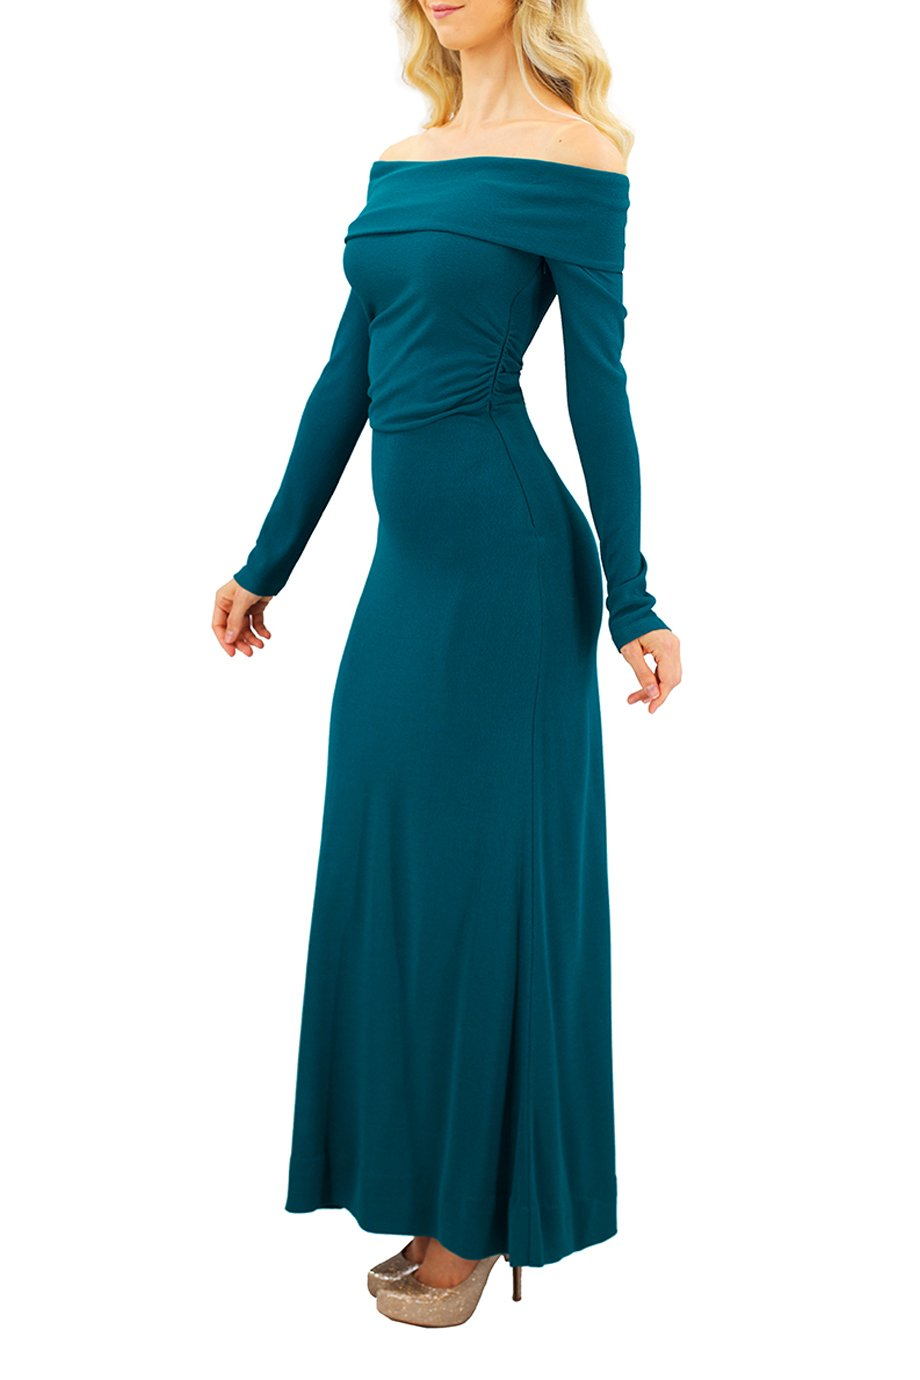 Derek Lam Turquoise Green Bardot Off the shoulder Gown